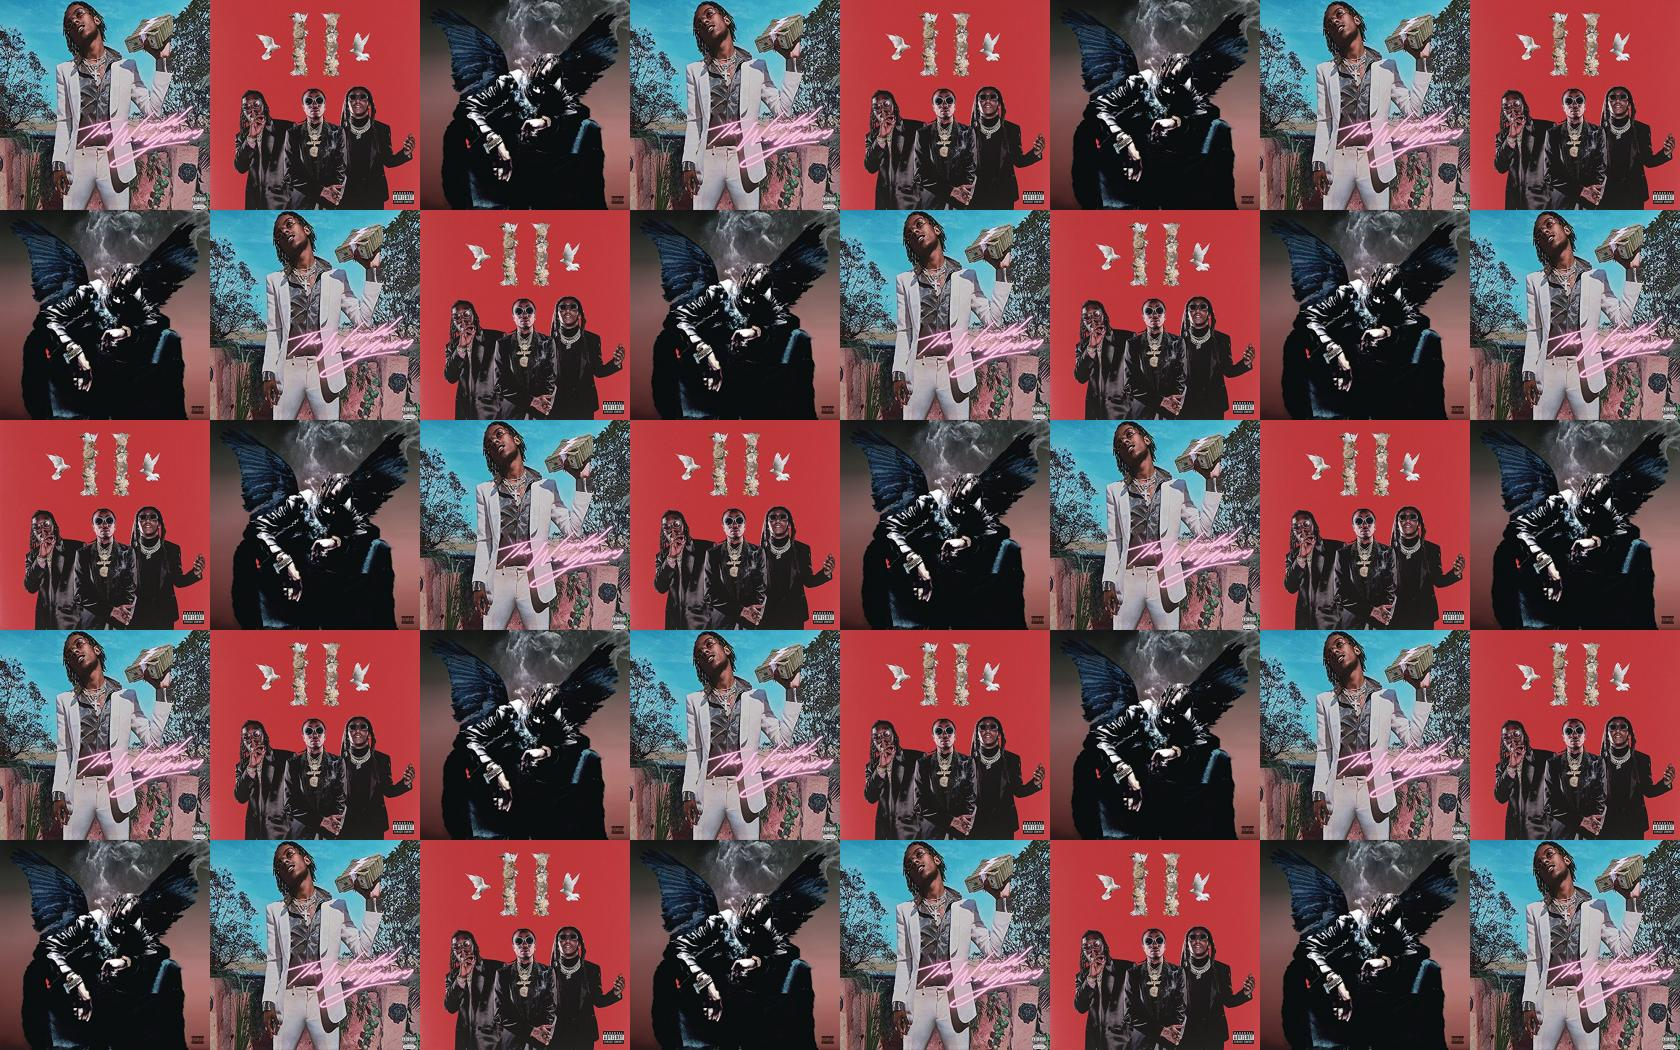 Rich Kid The World Yours Culture Ii Migos Wallpaper Tiled